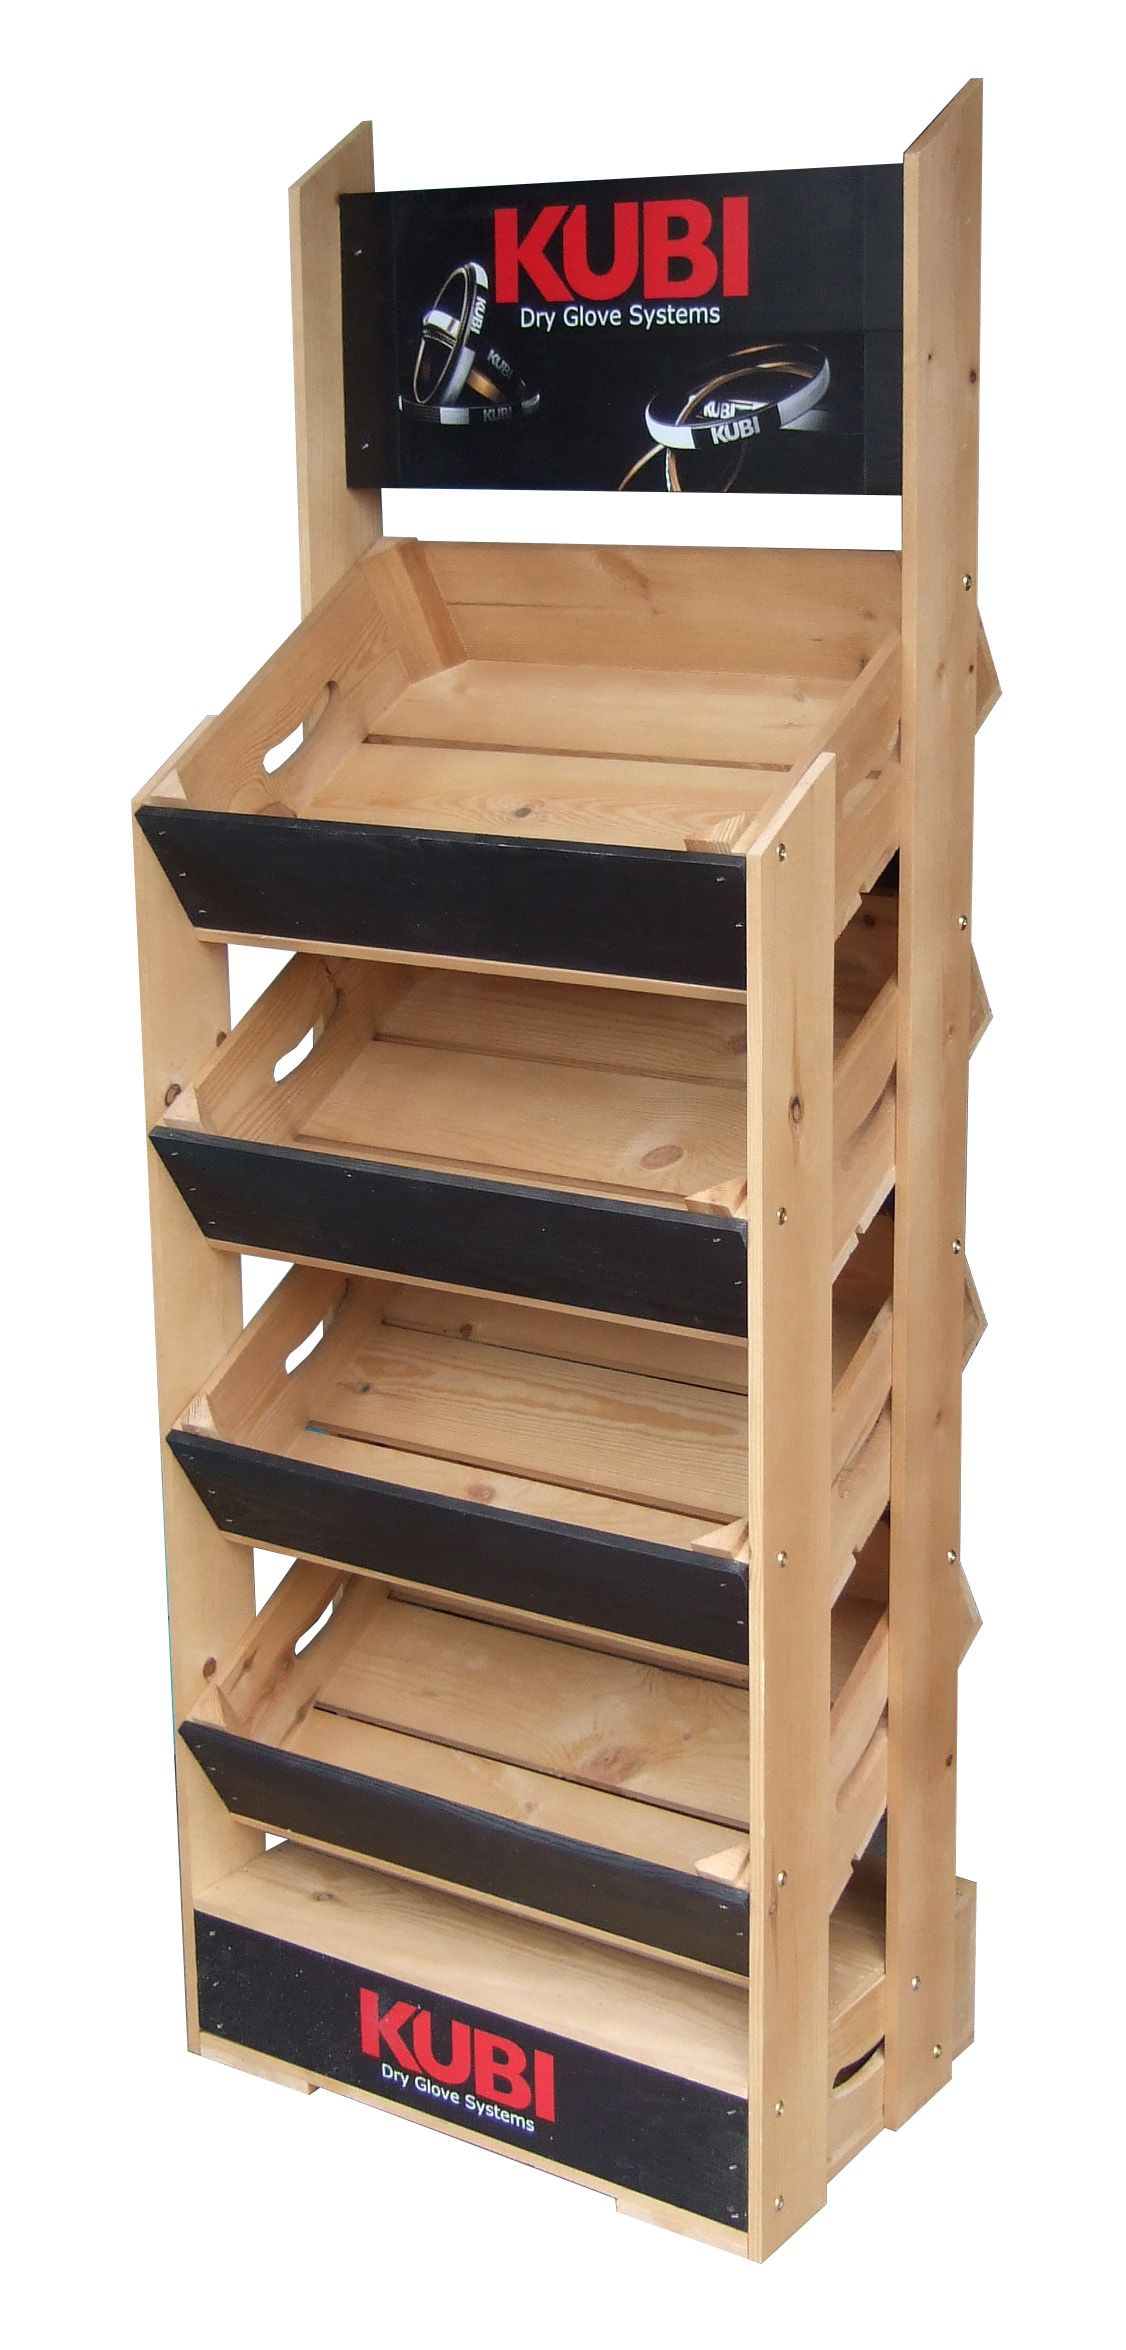 Branded Wooden Crates For Retail Display And Point Of Sale Display